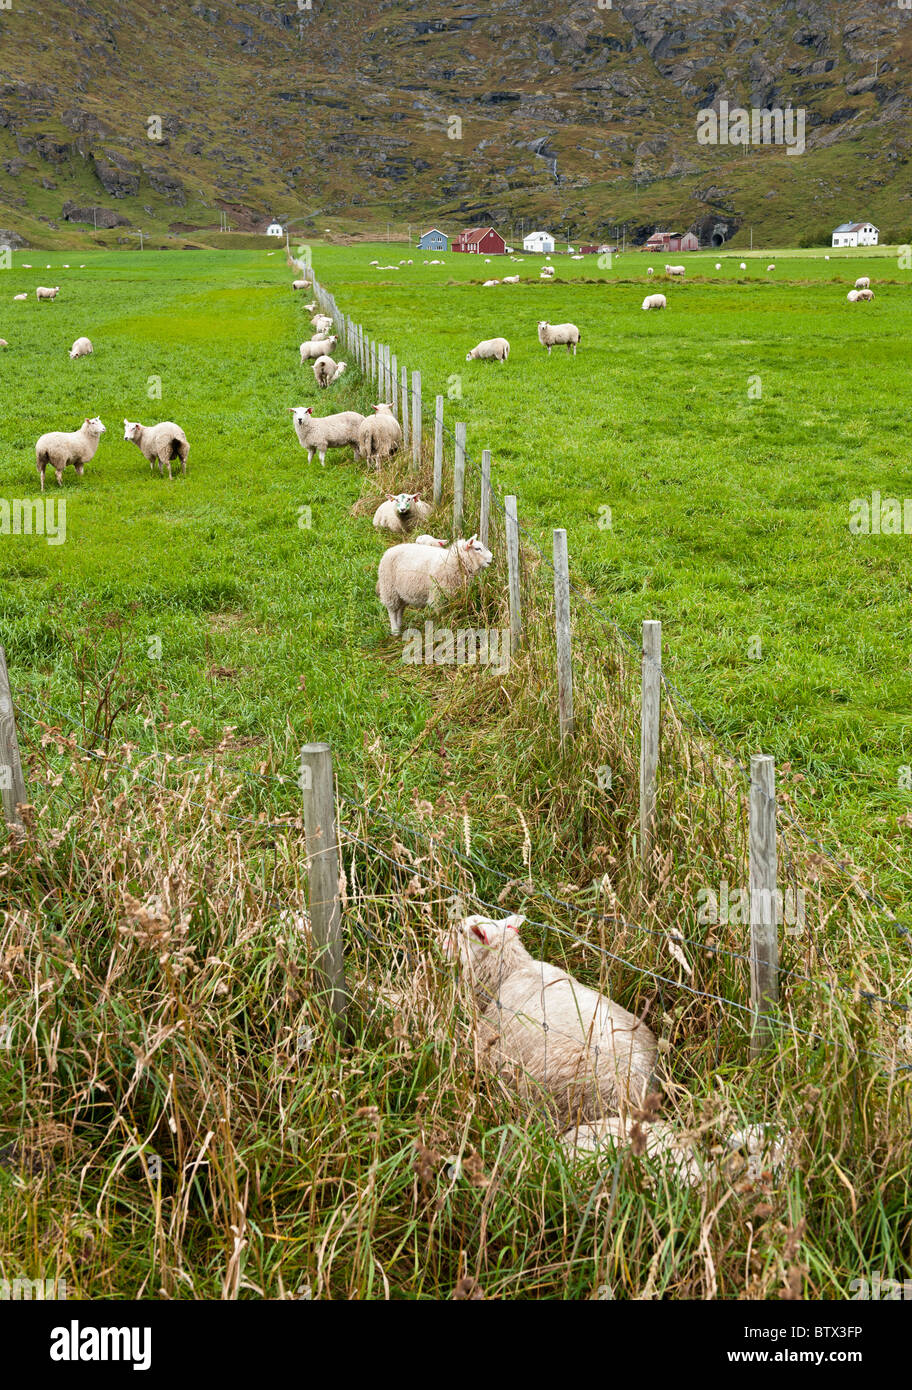 Sheep on a green field in Lofoten islands, North Norway - Stock Image